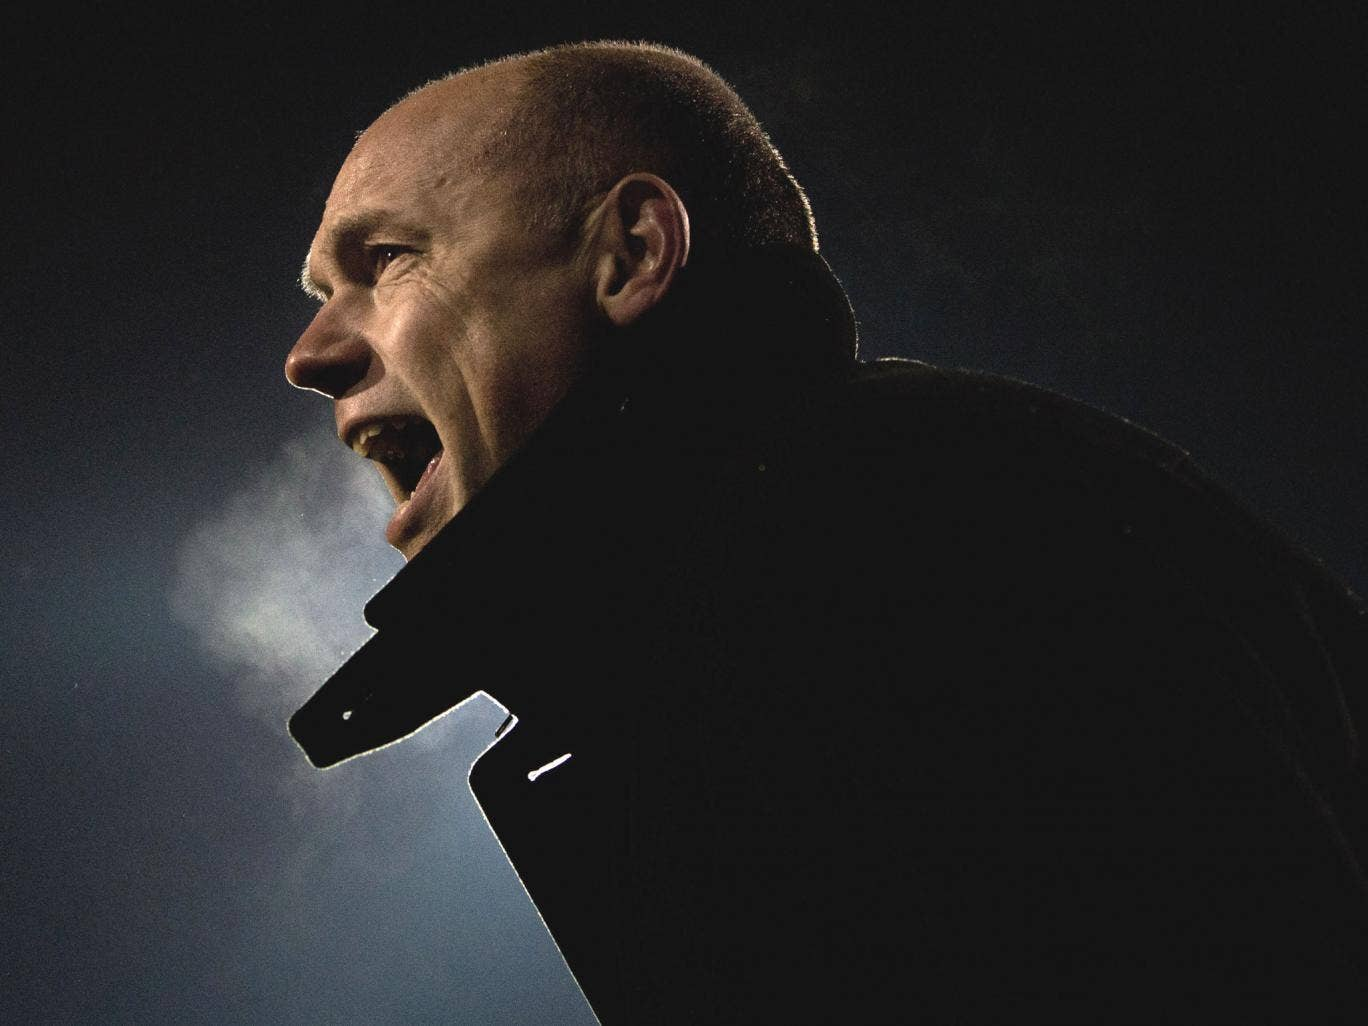 King Bee: Brentford manager Uwe Rösler has spearheaded the club's success on the pitch